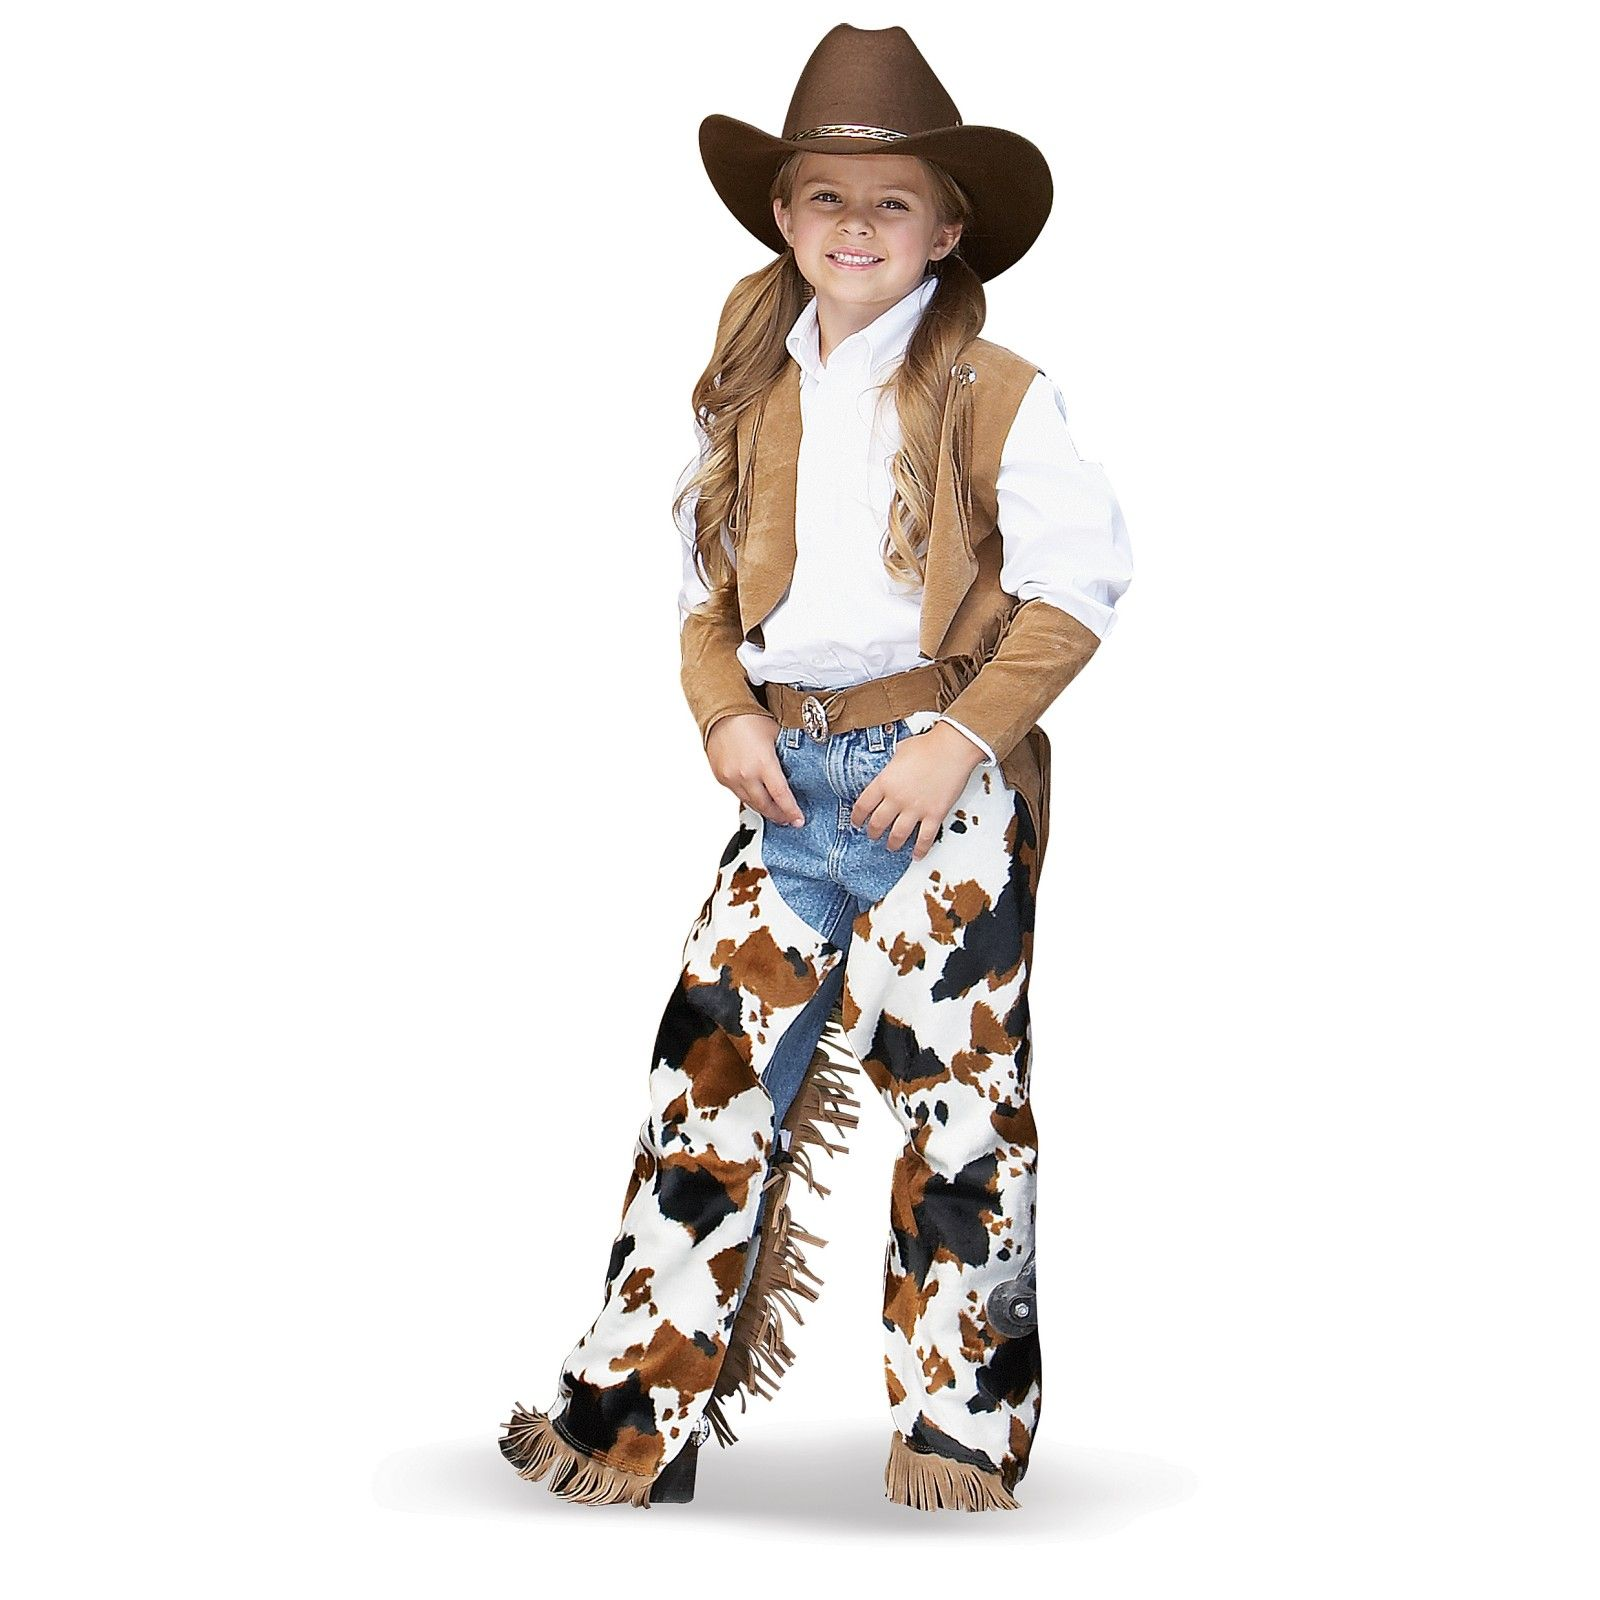 Giddy up and ride  em Cowgirl! They ll be raring to wrangle some cattle in  this get up. Perfect for a wild western themed Halloween! 2362f1c94b9